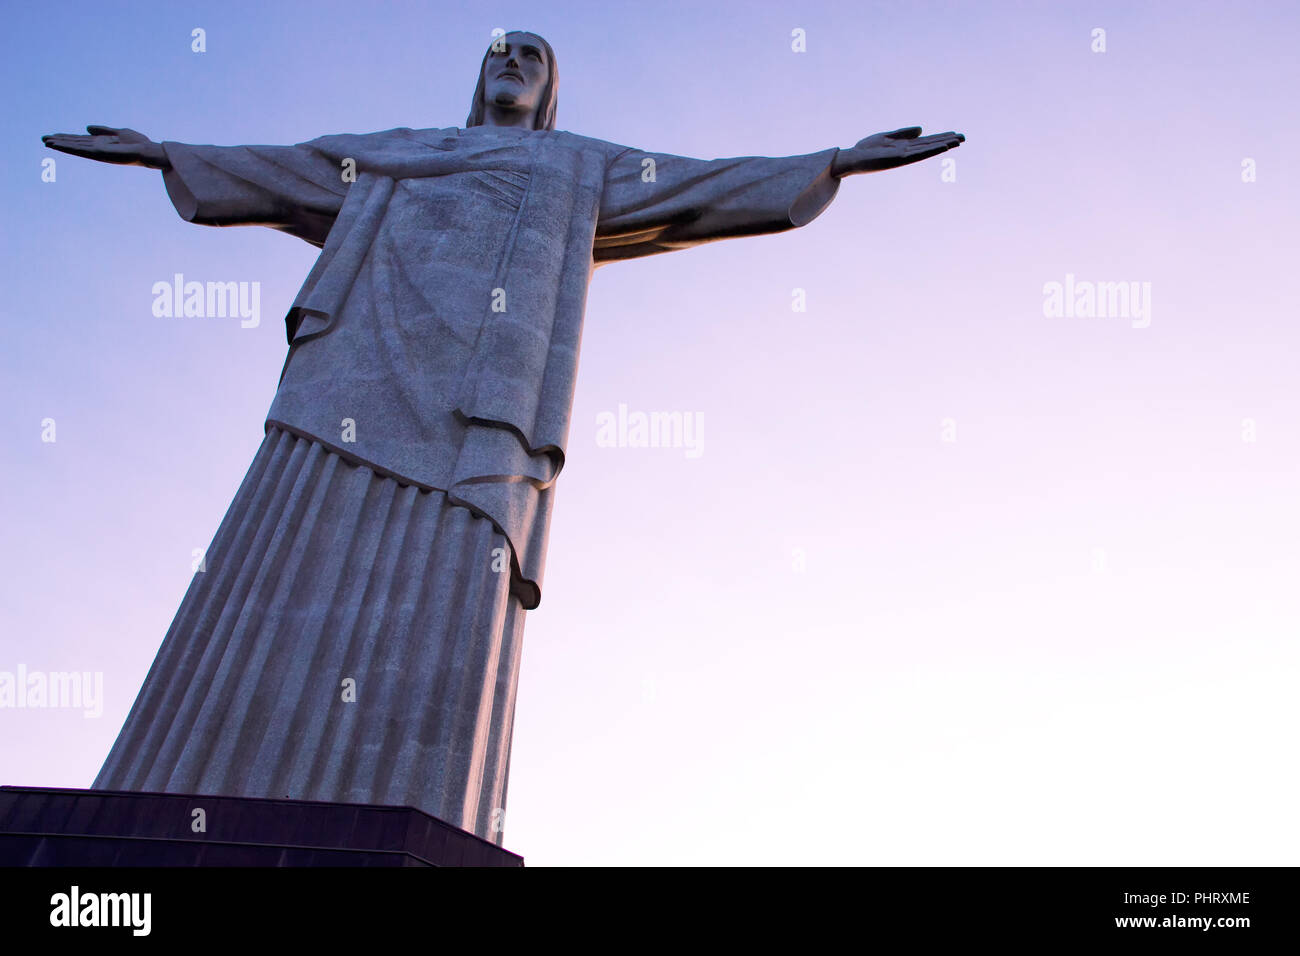 The statue of Christ the redeemer with open arms - Stock Image